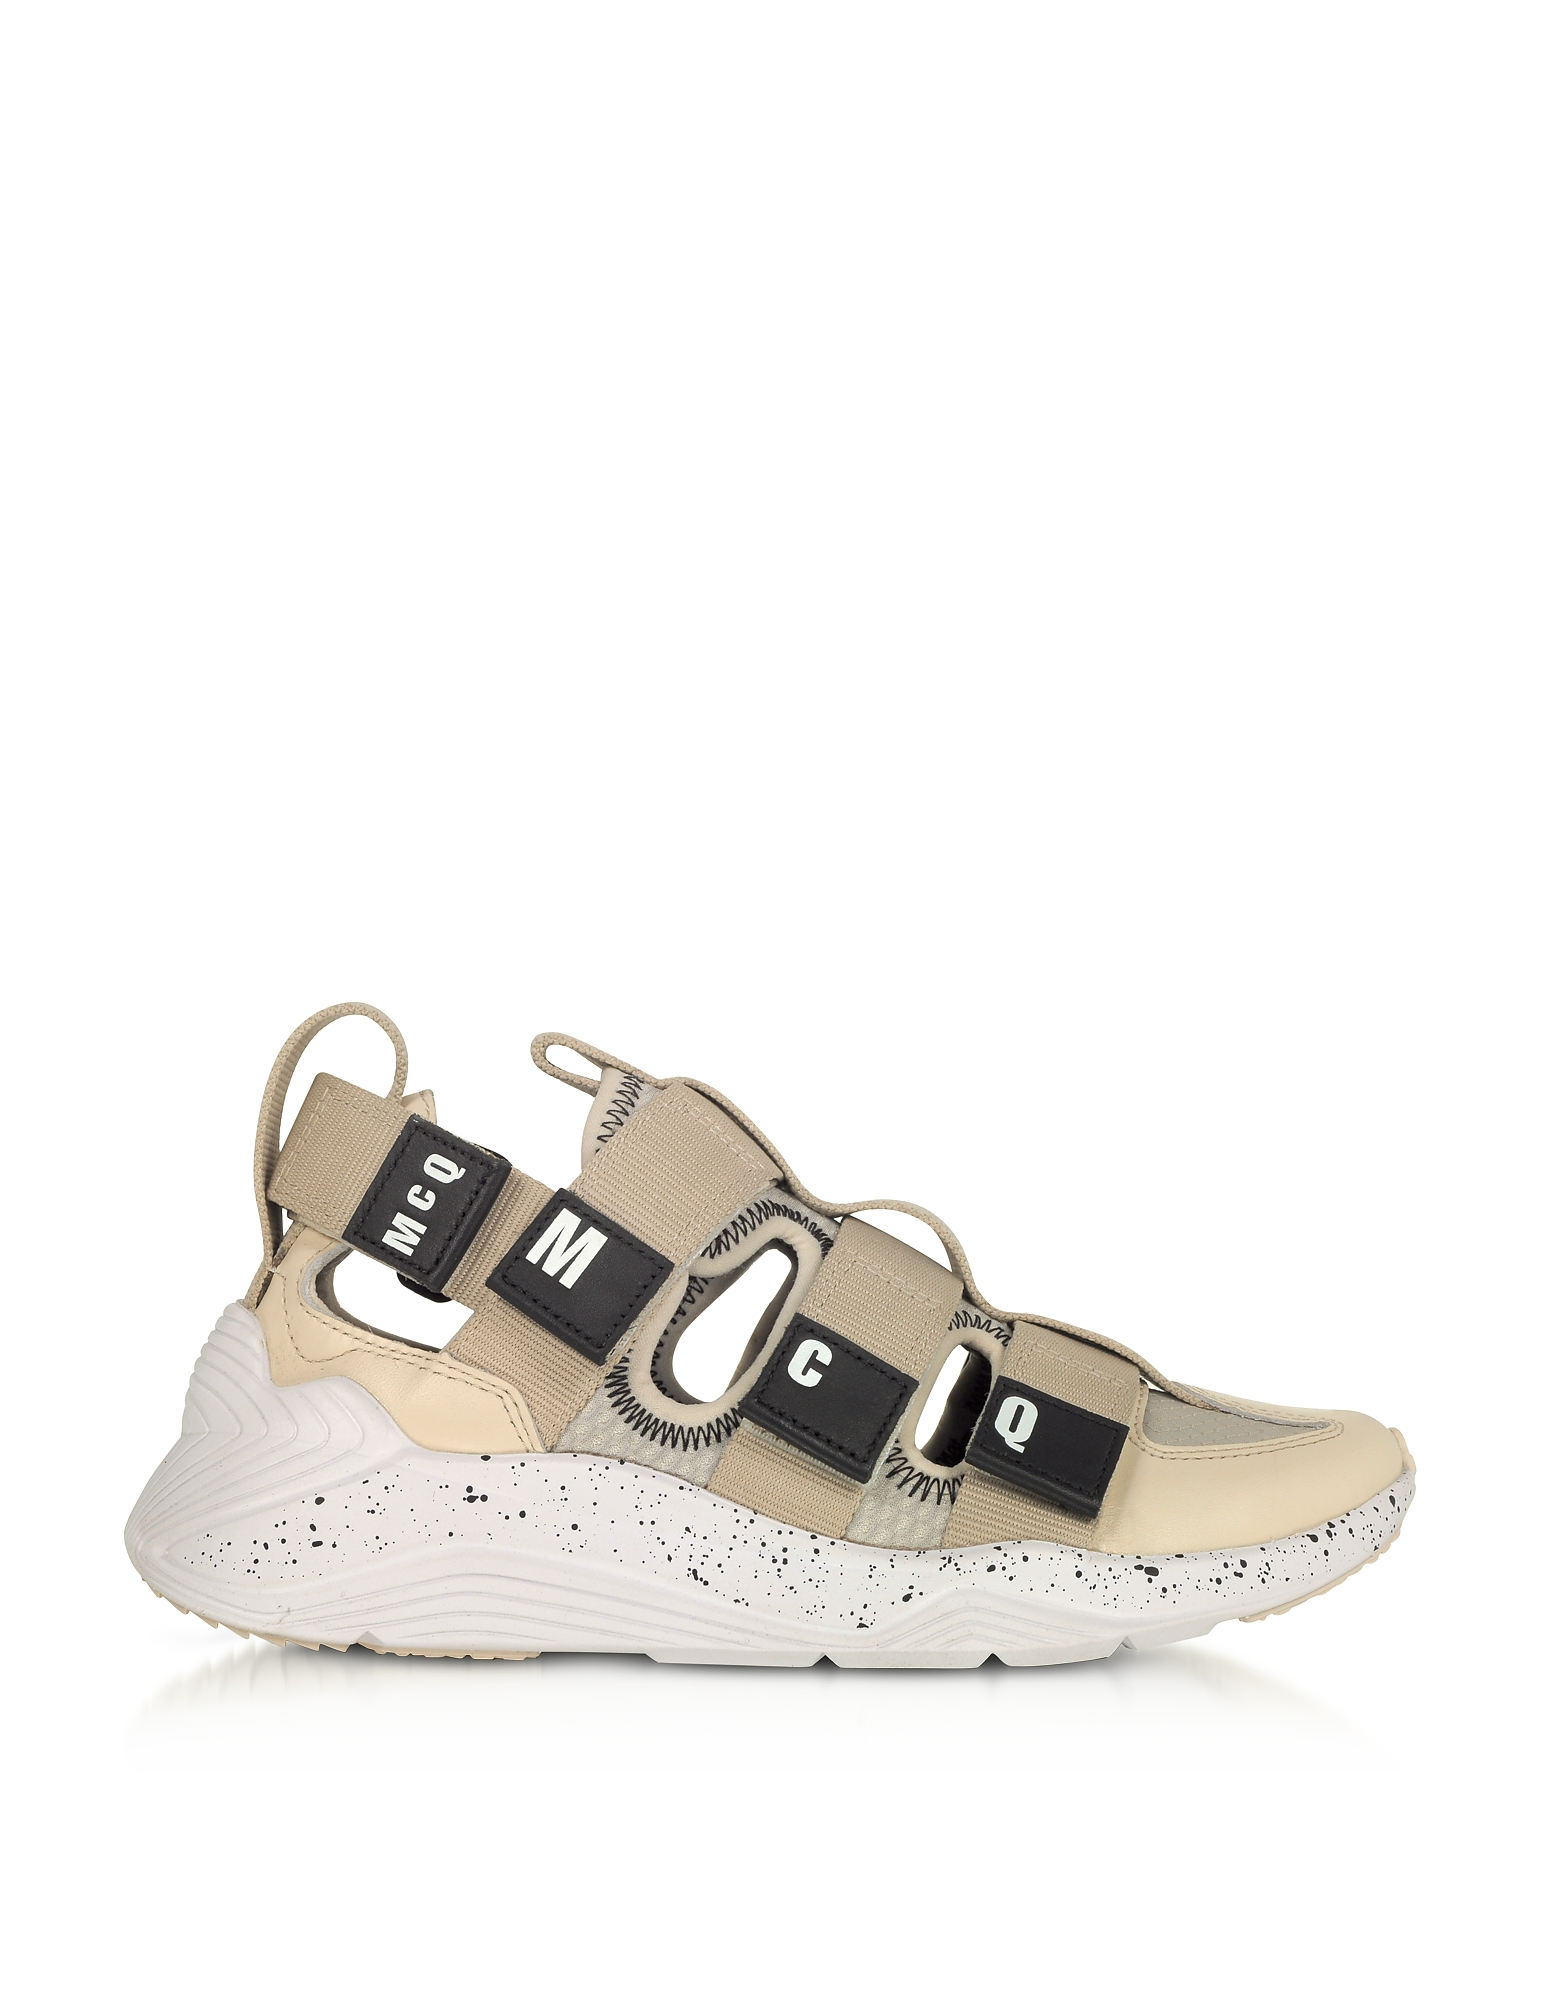 McQ Alexander McQueen Designer Shoes, Off White Tech Sandal 1.0 Sneakers